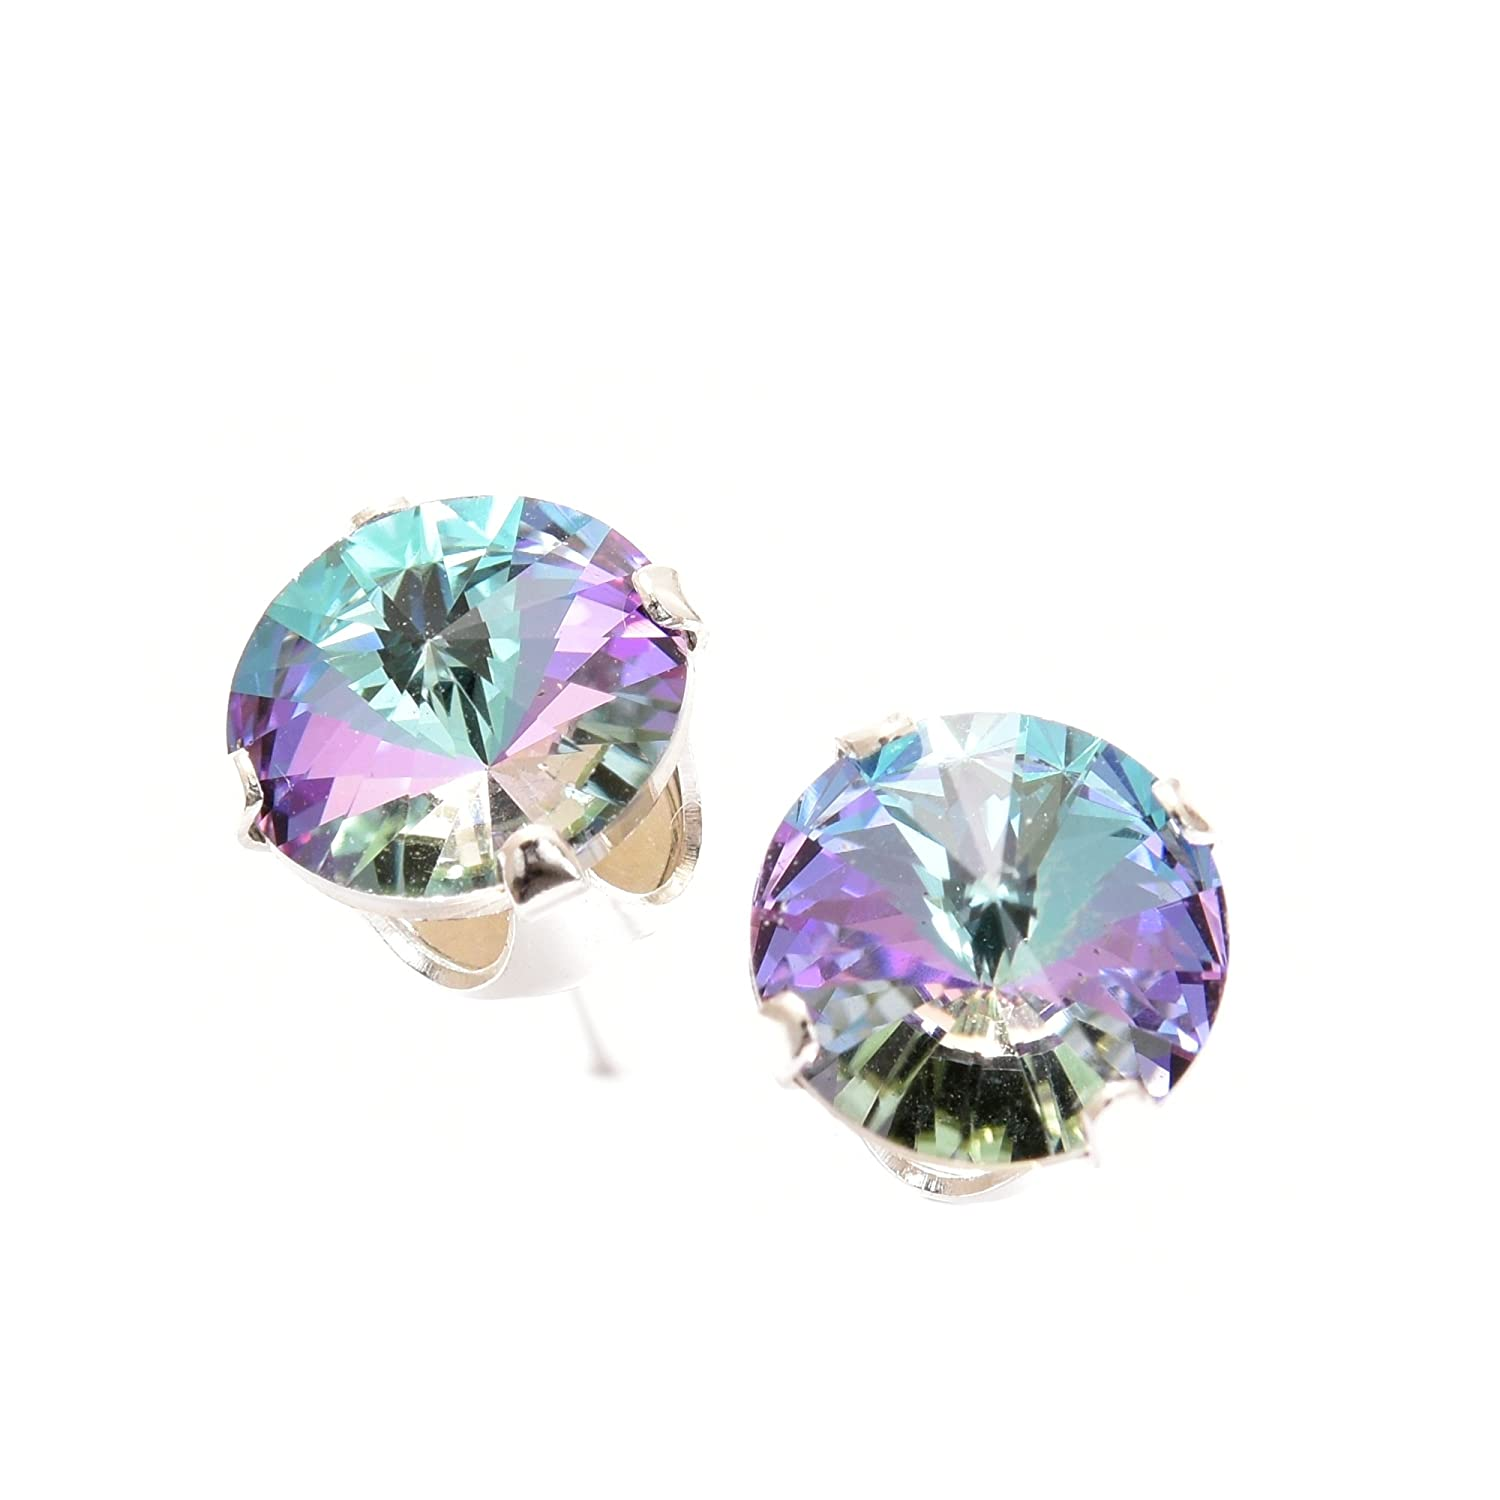 8514be6097b9 925 Sterling Silver stud earrings for women made with sparkling Starlight  crystal from Swarovski®.